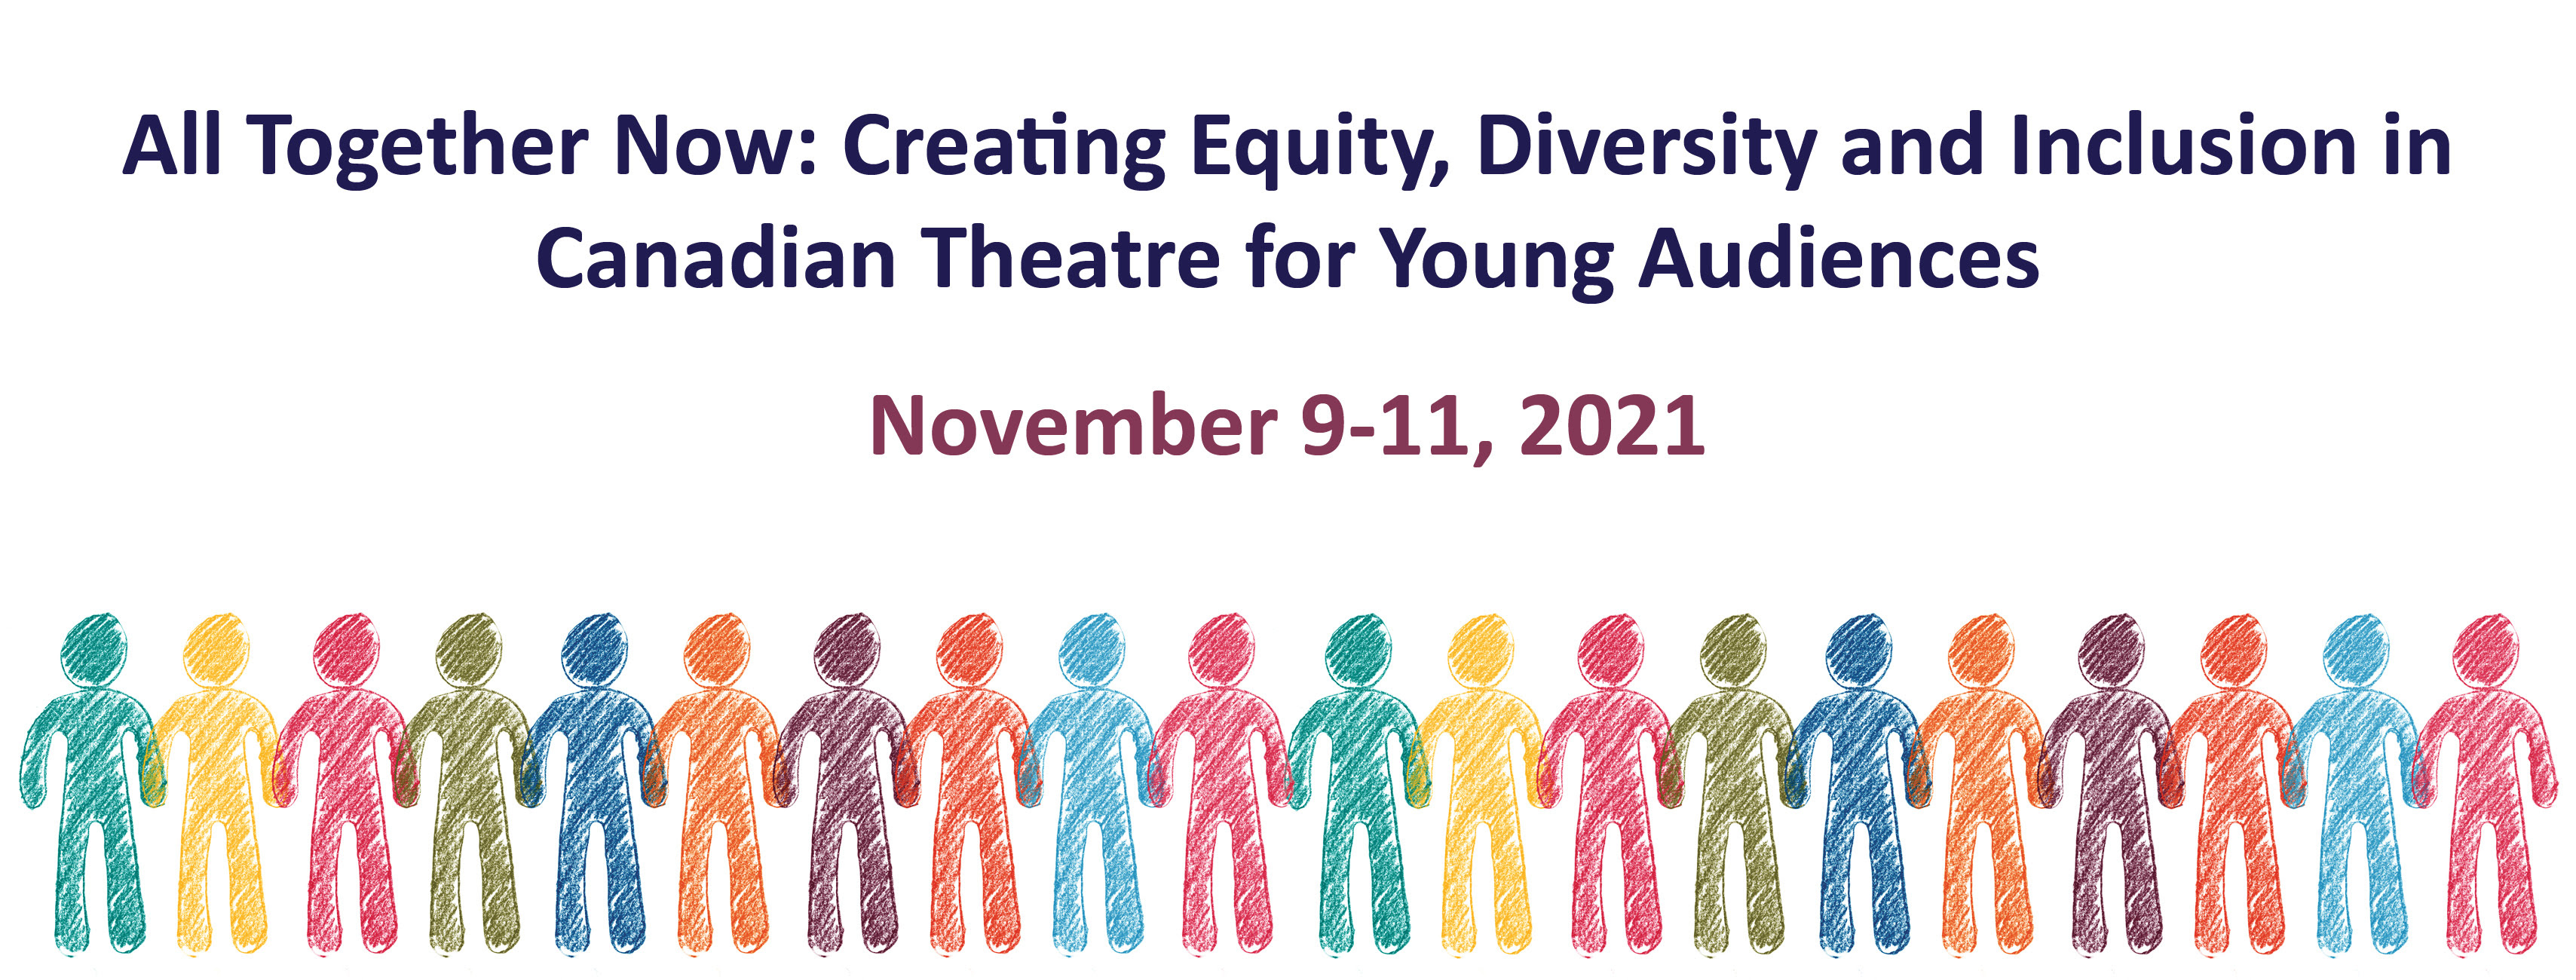 All Together Now: Creating Equity, Diversity and Inclusion in Canadian Theatre for Young Audiences, November 9-11, 2021 via Zoom. Beneath the text 20 abstract figures in different colours holding hands, figures look like drawn with pencils.